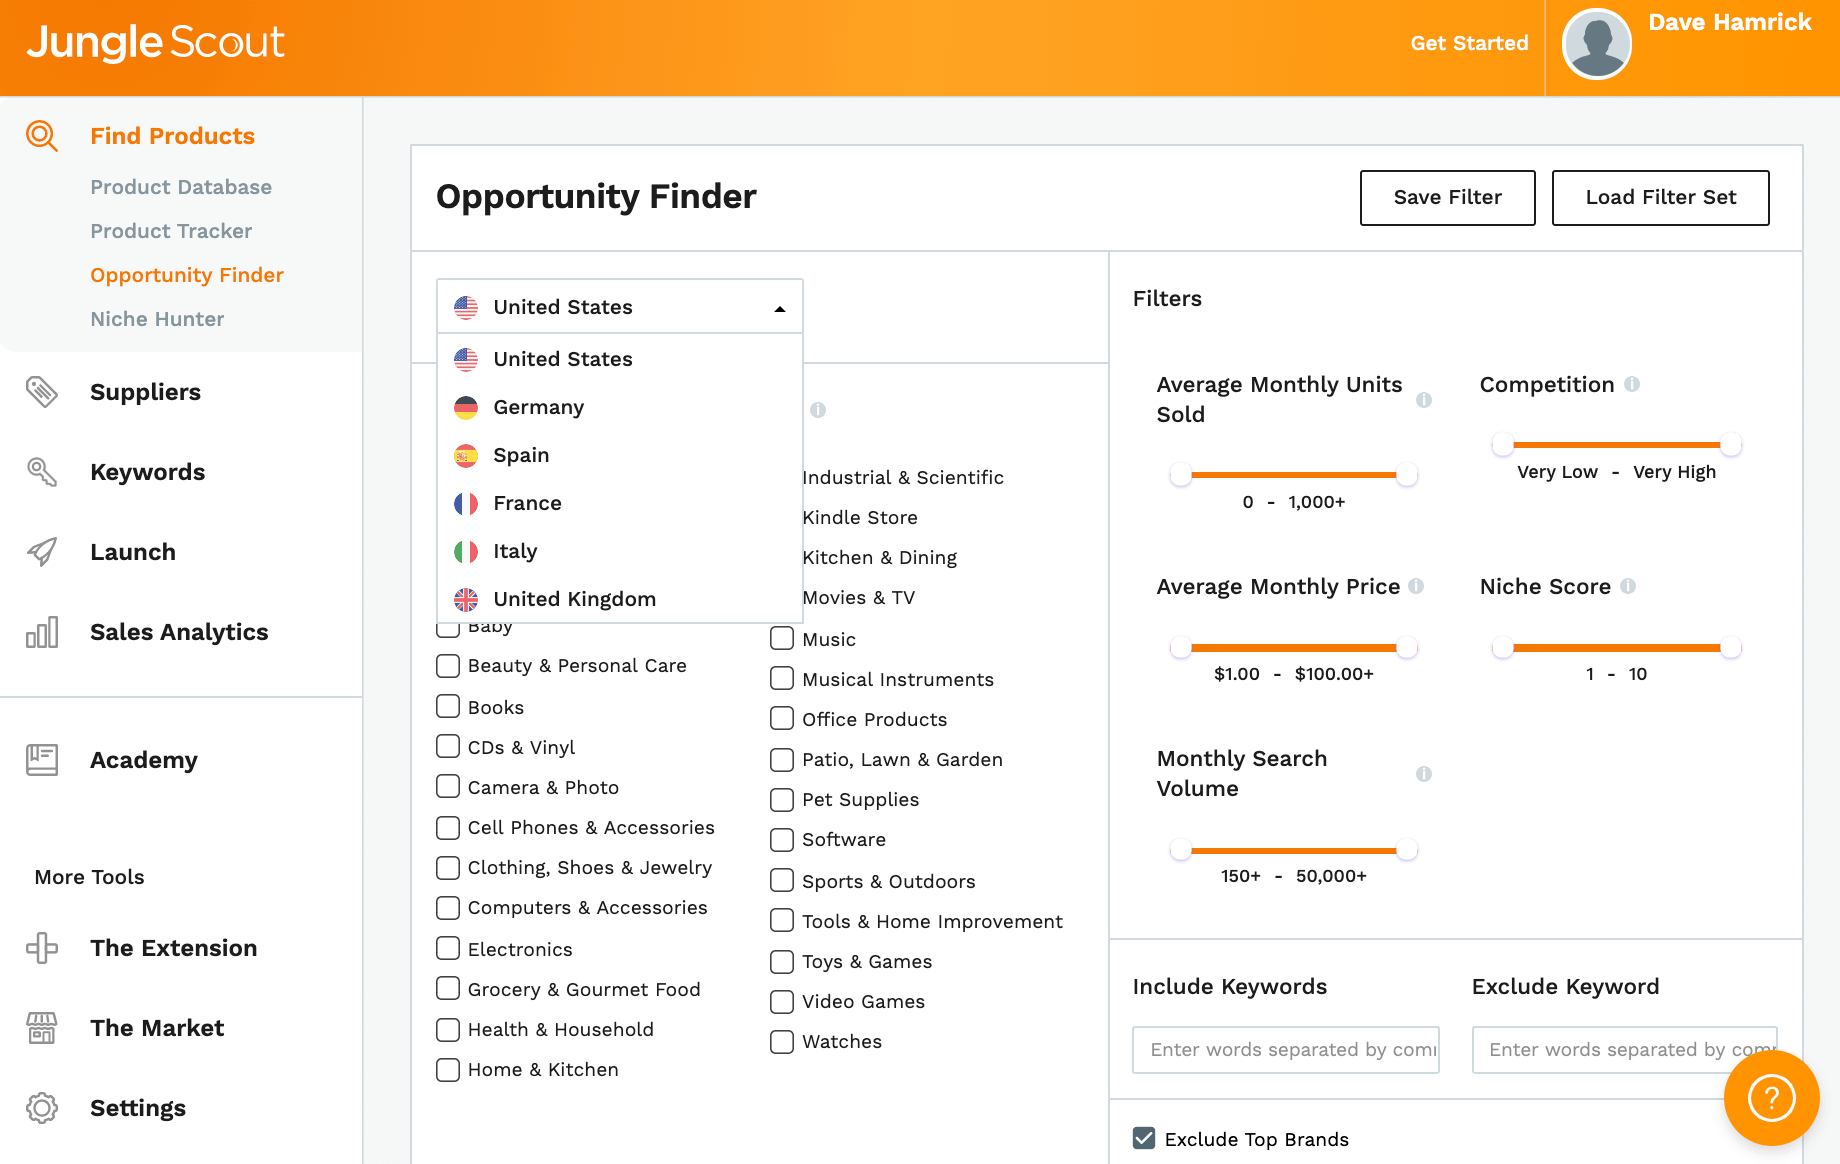 Opportunity Finder